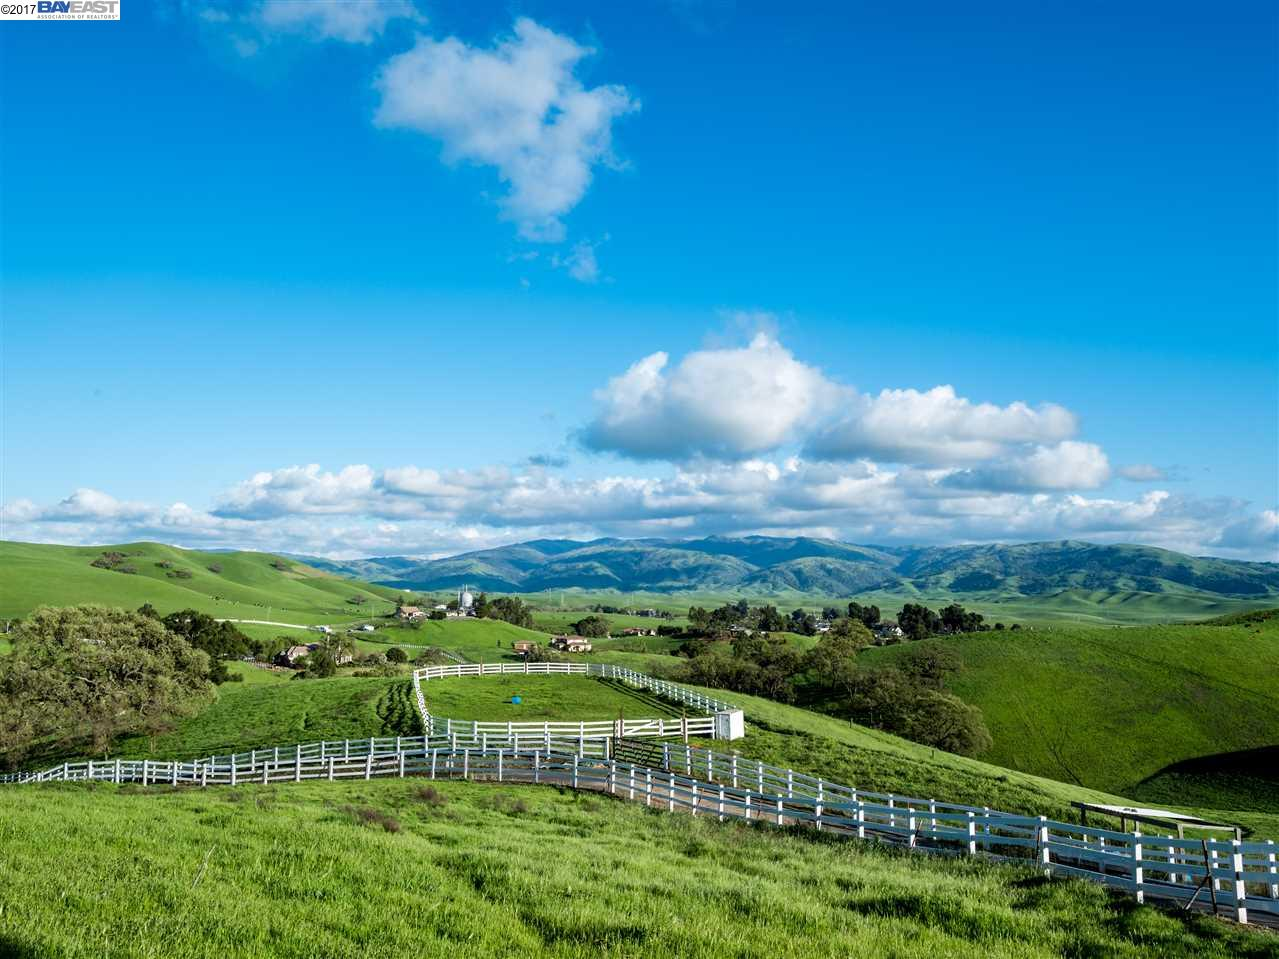 Land for Sale at 3333 Little Valley Rd, LOT C Sunol, California 94586 United States